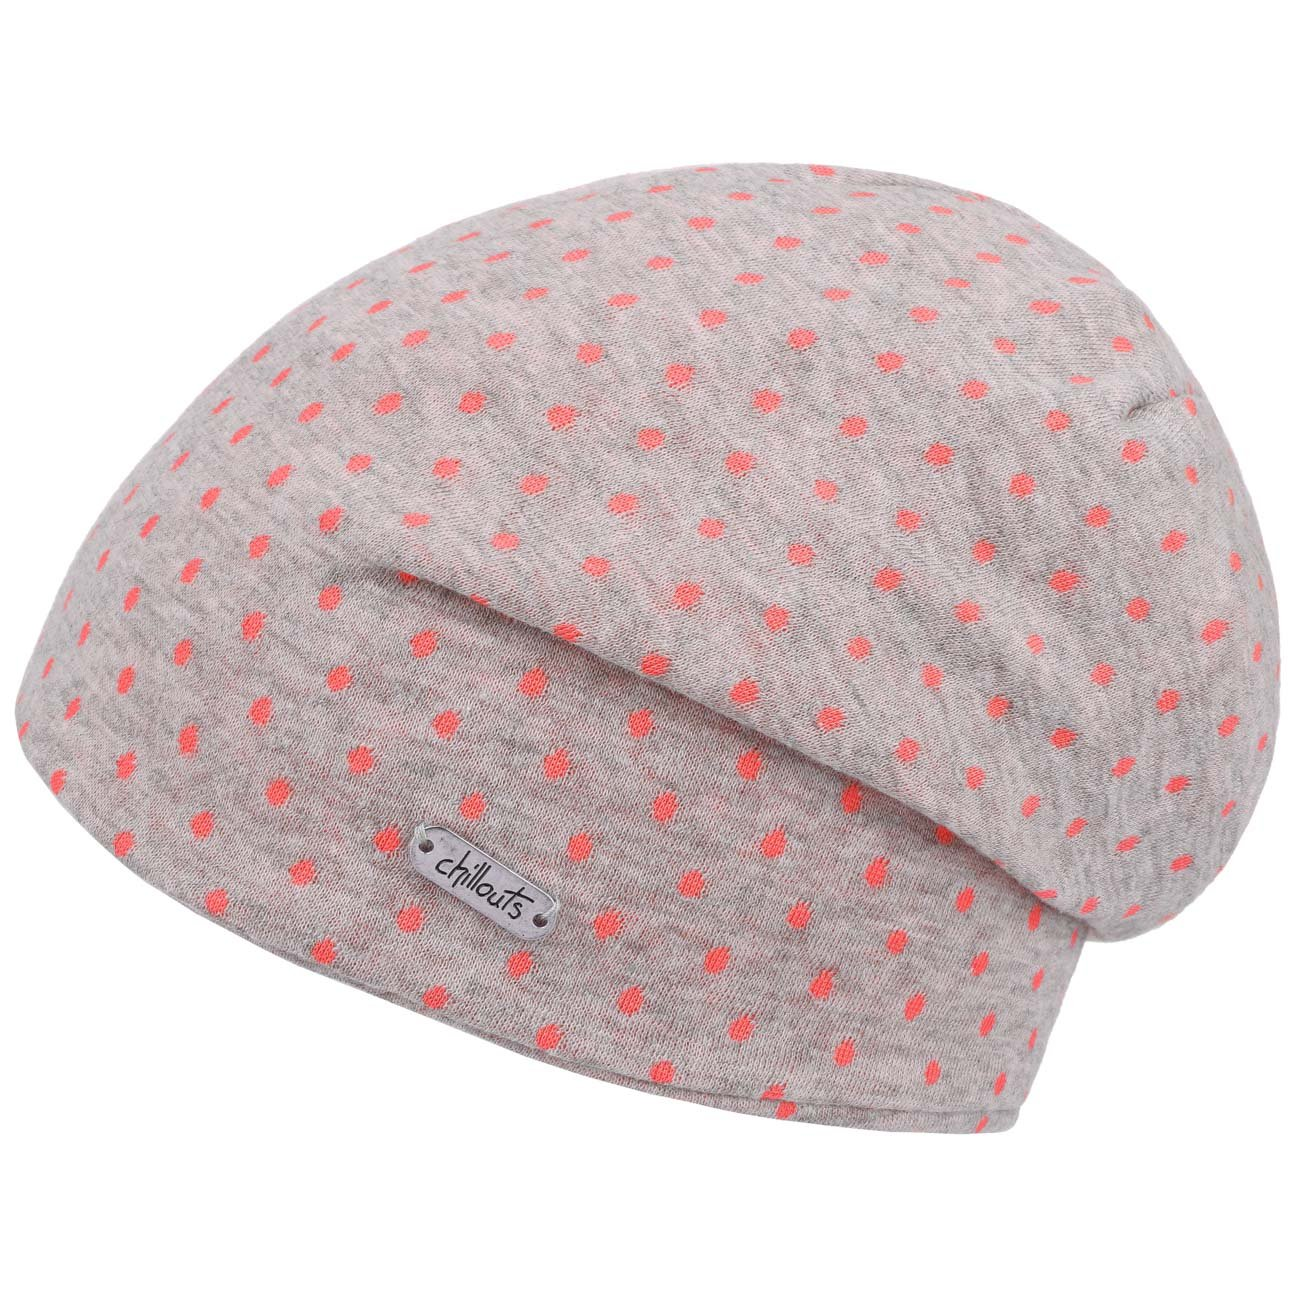 CHILLOUTS Johannesburg Oversize Beanie Indoorm/ütze M/ütze Sommerm/ütze Beaniem/ütze Dames muts Long zomer